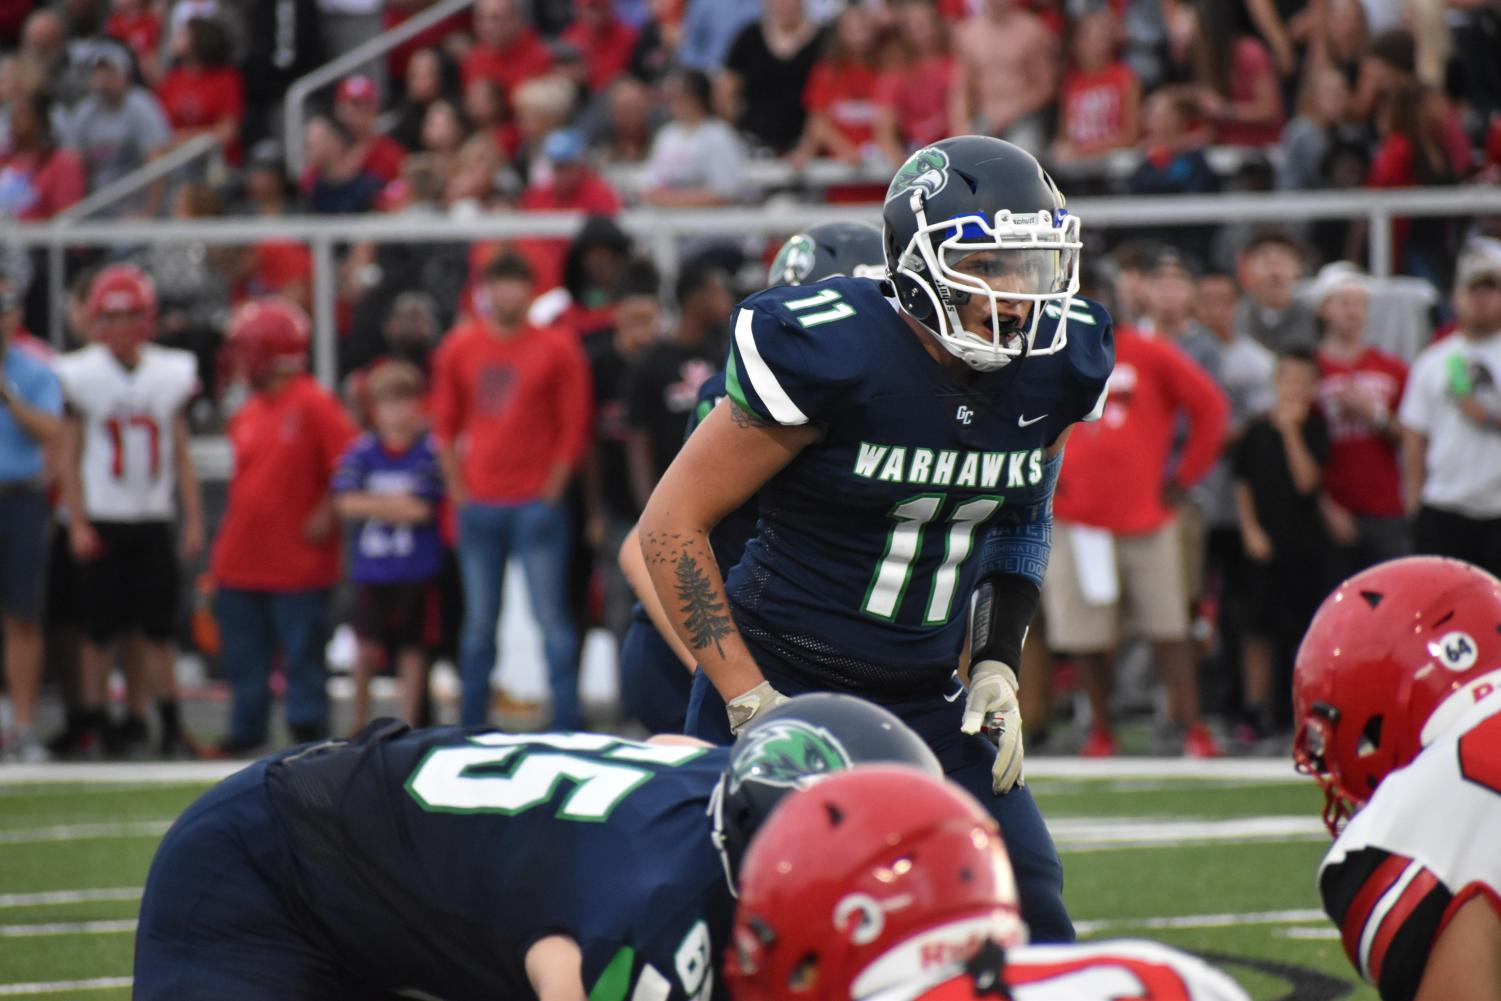 Starting a football program from scratch requires patience, determination and grit, as many players learned in their first season as Warhawks.